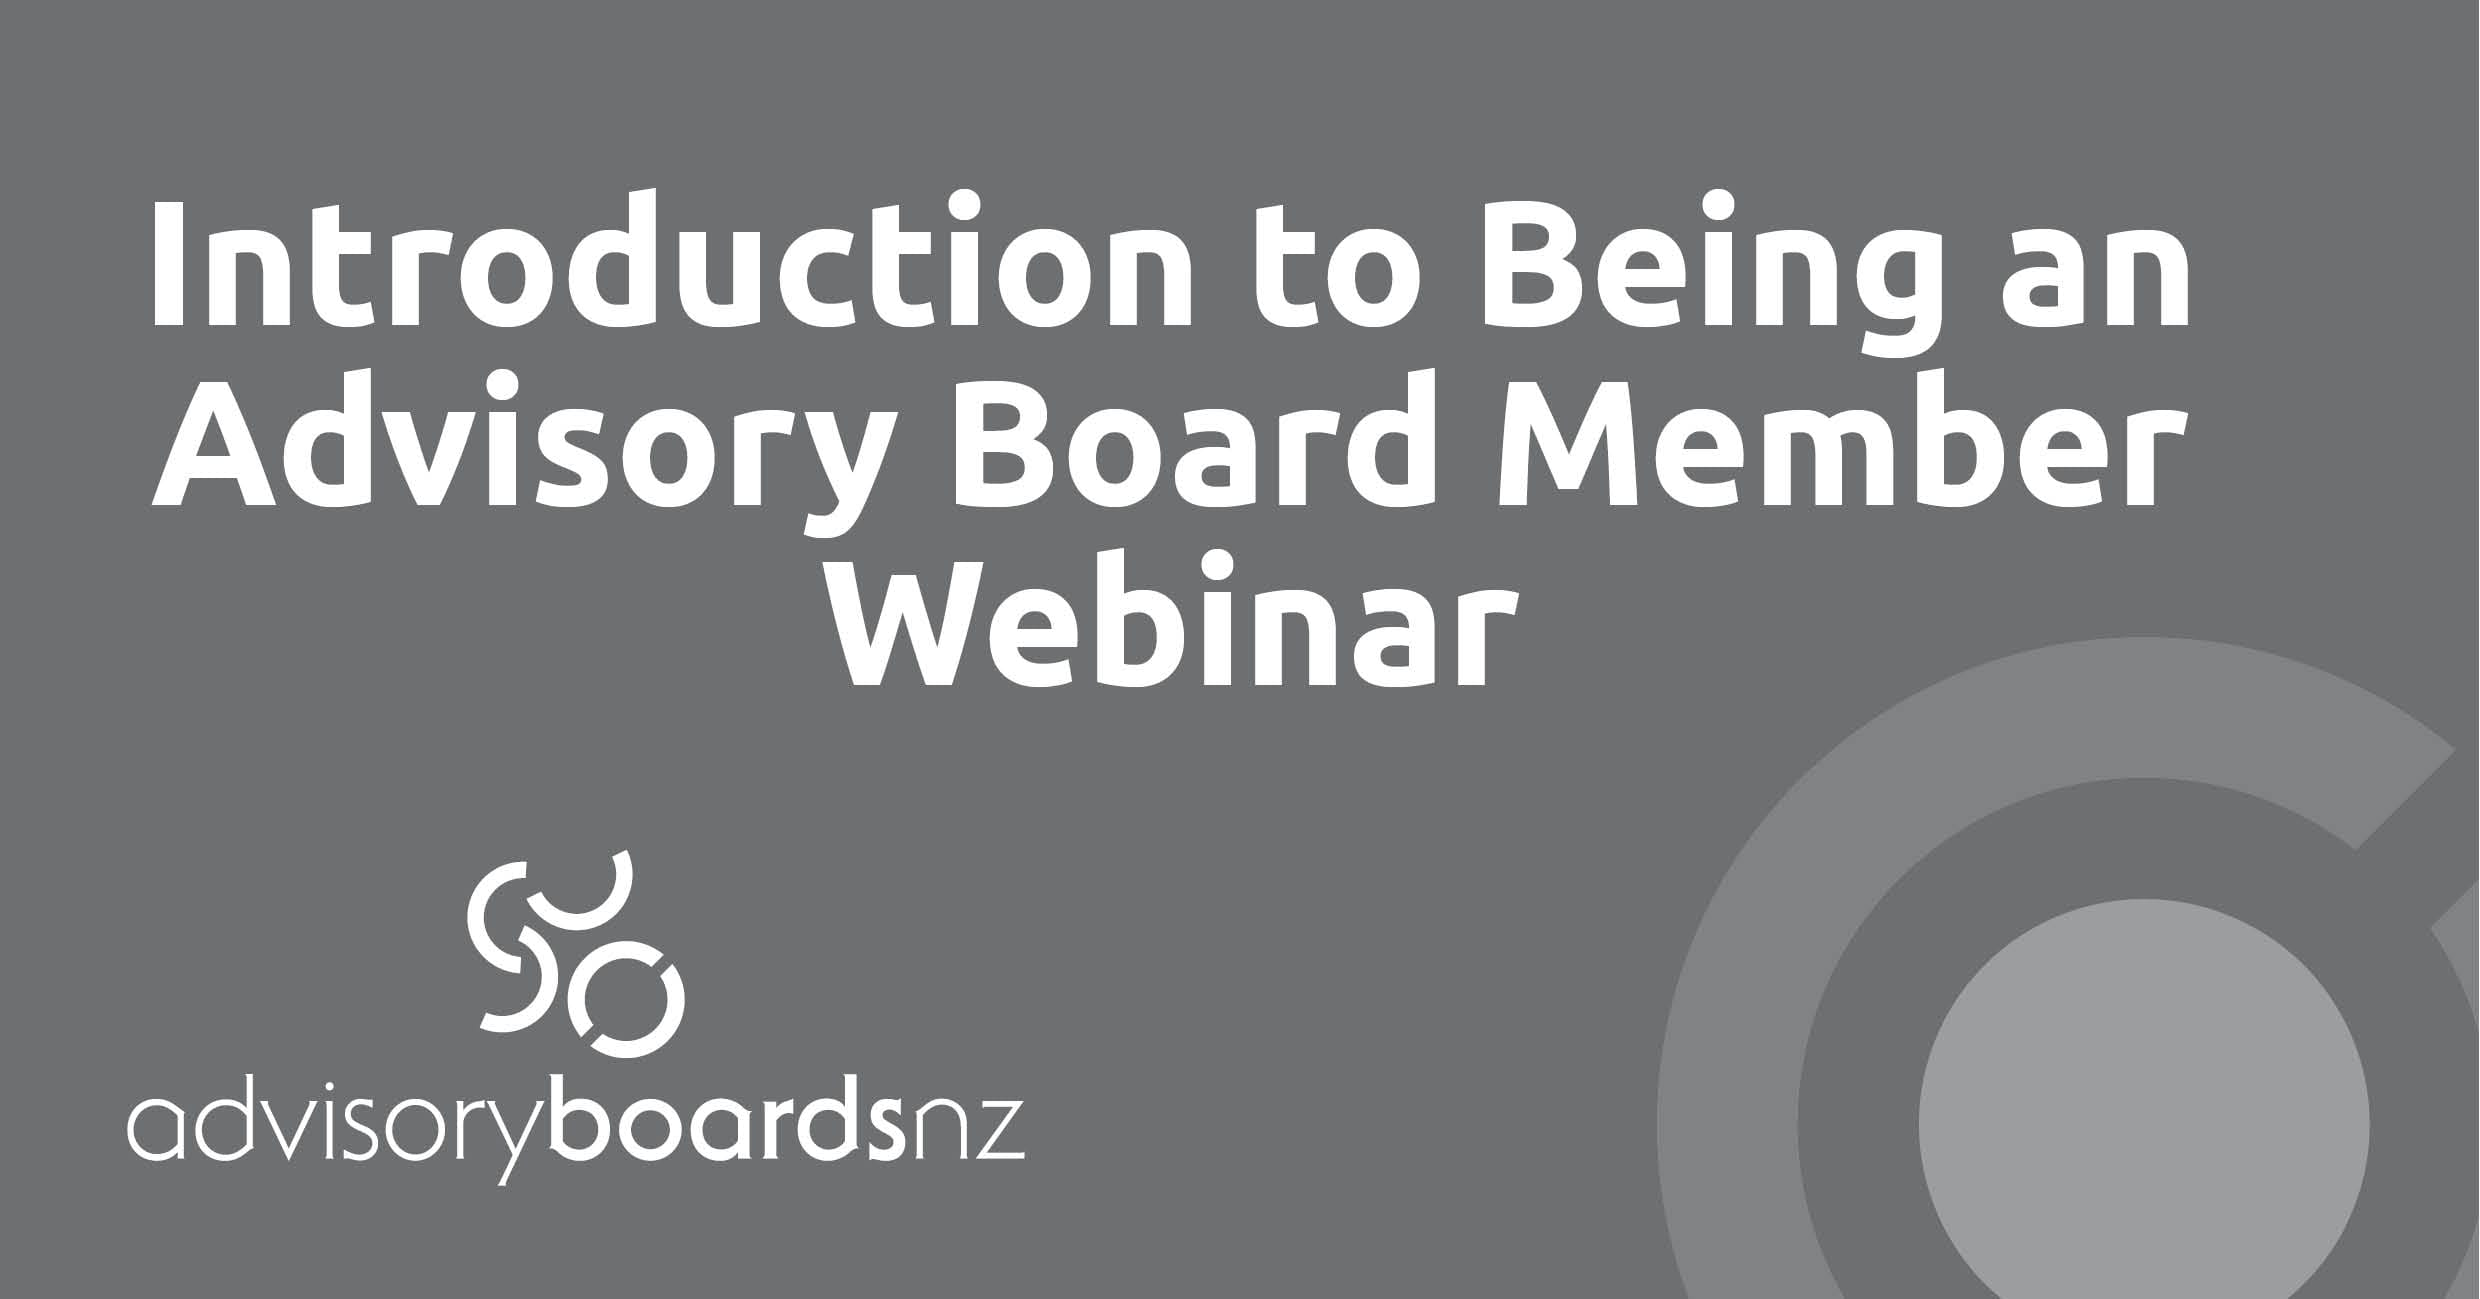 Introduction to Being an Advisory Board Member - Webinar